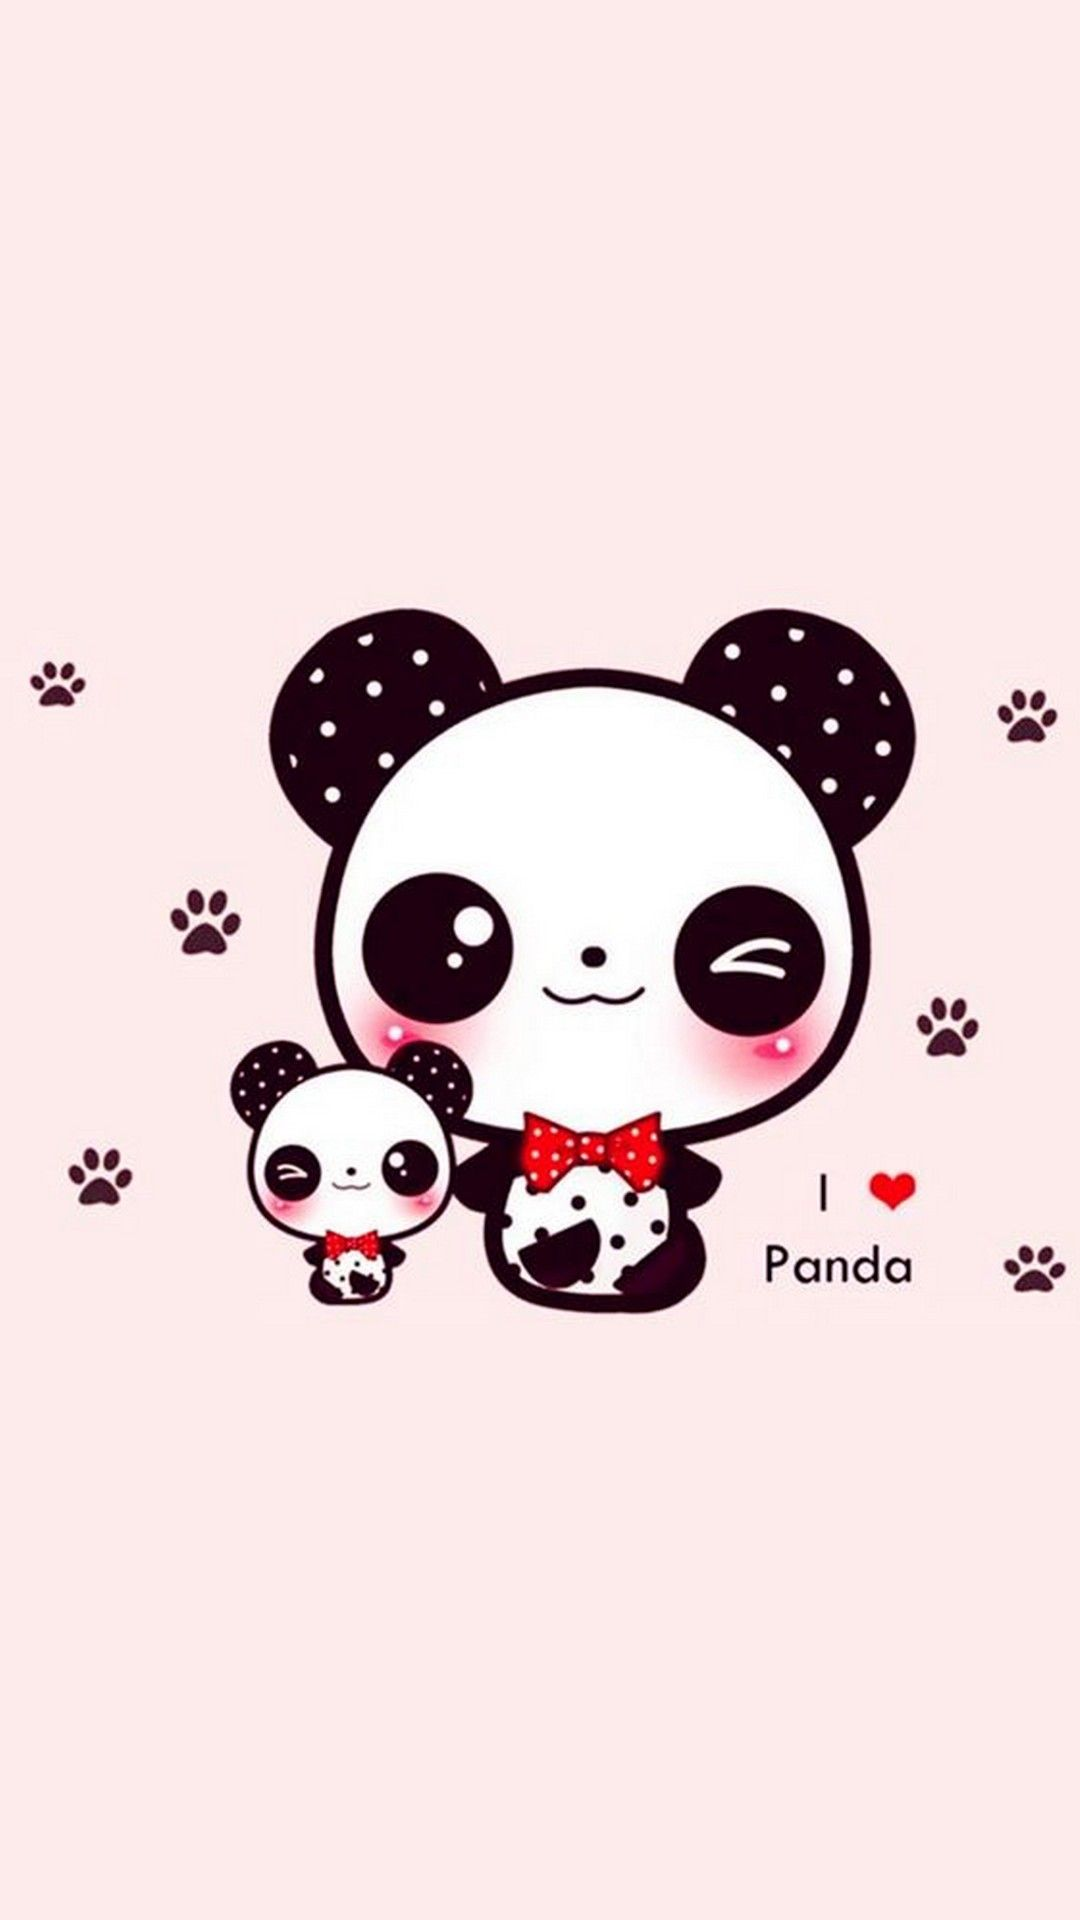 Cute Panda Wallpaper For Iphone Iphonewallpapers Cute Panda